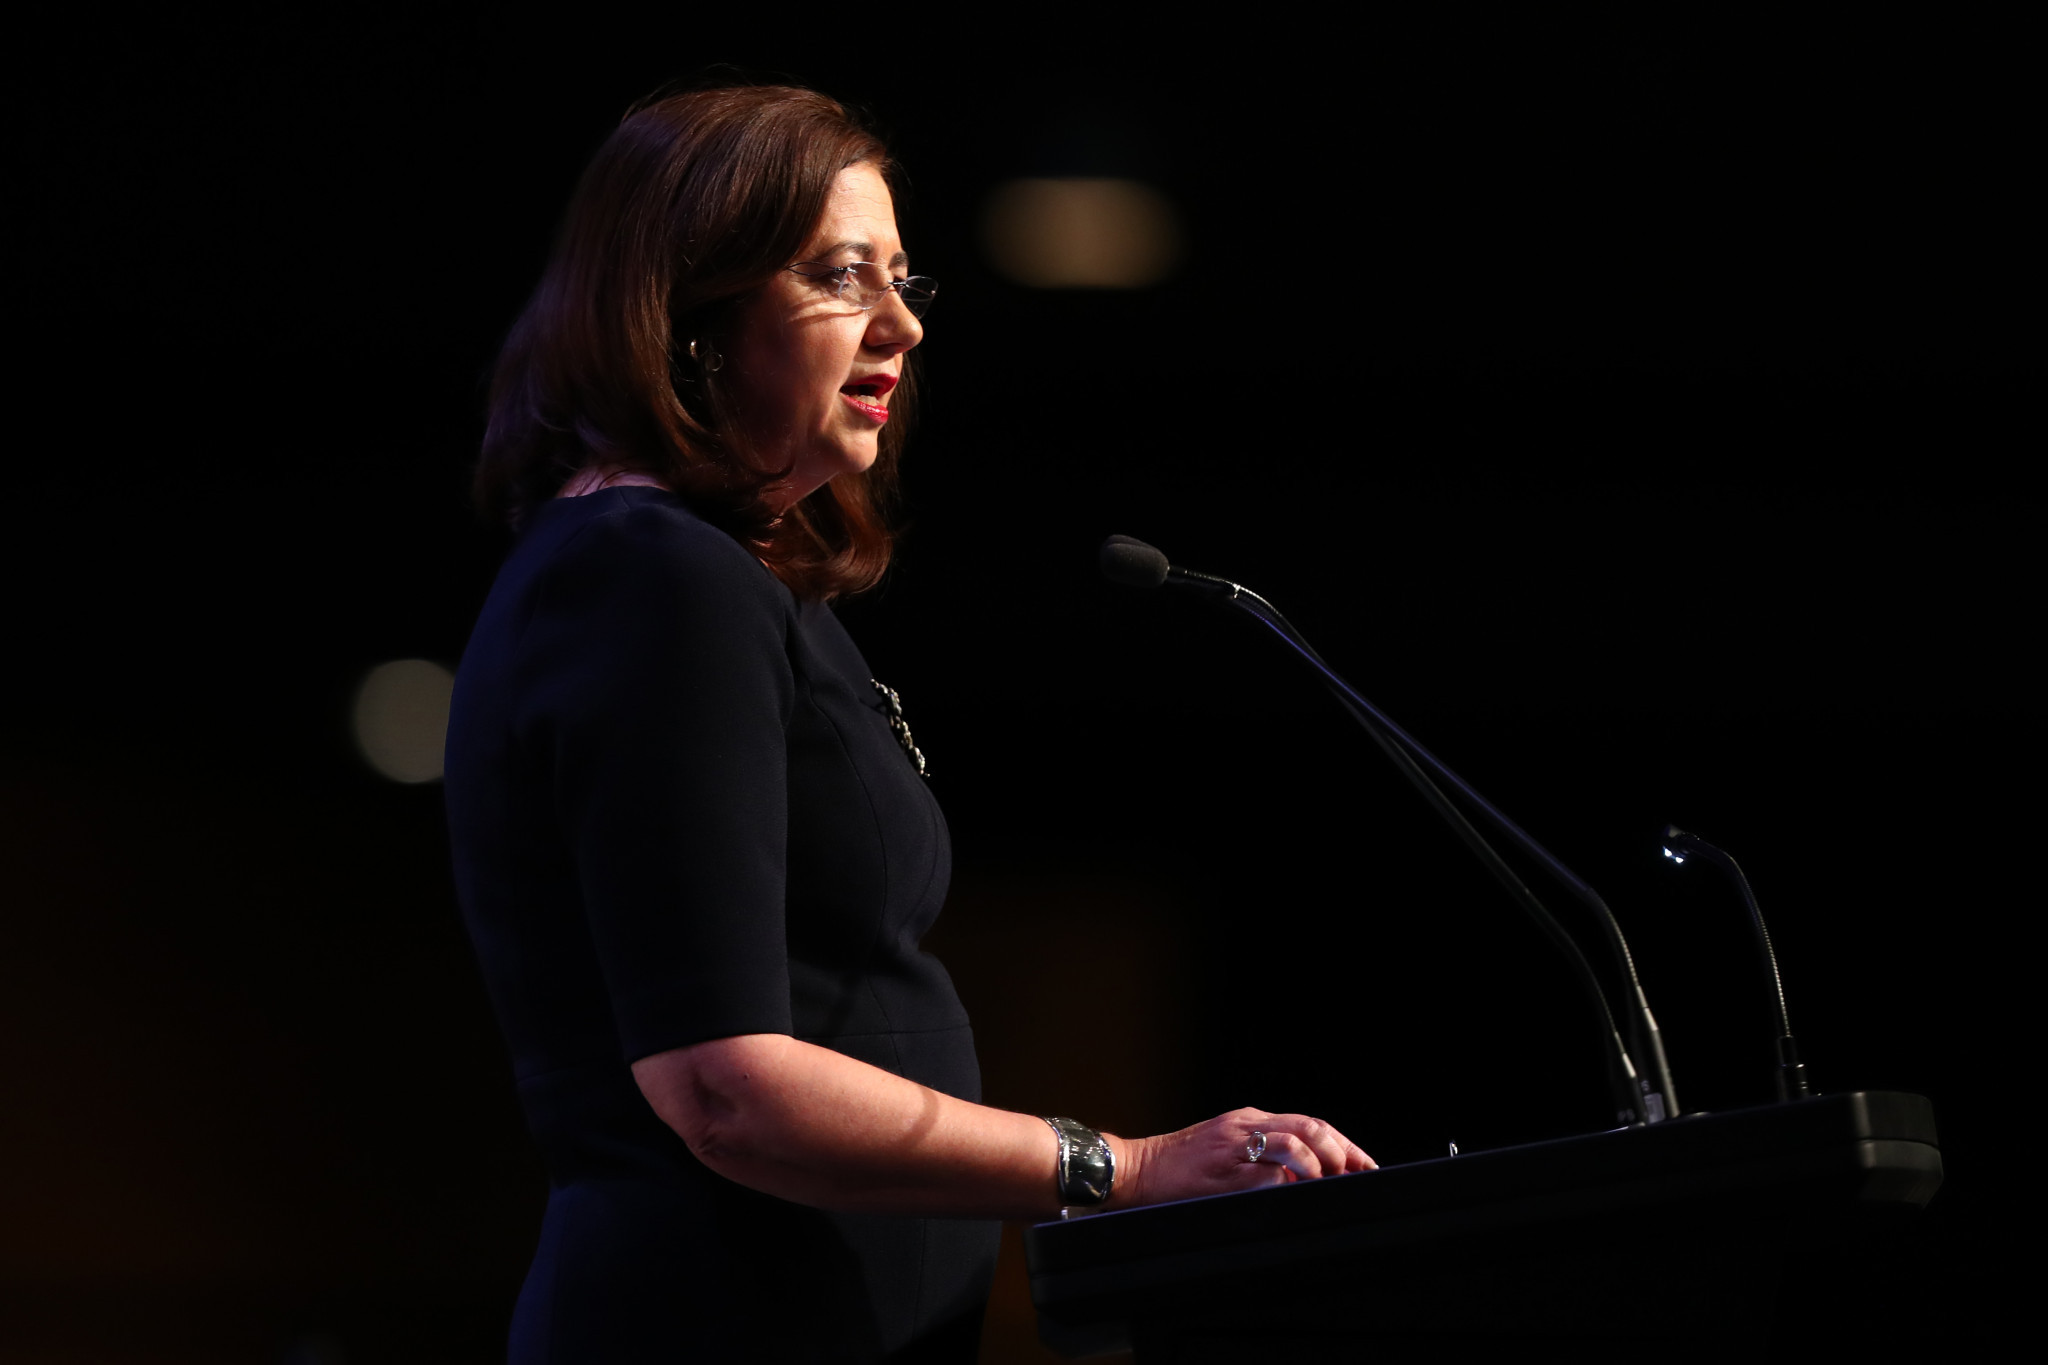 Queensland launches taskforce to further examine bid for 2032 Olympics and Paralympics